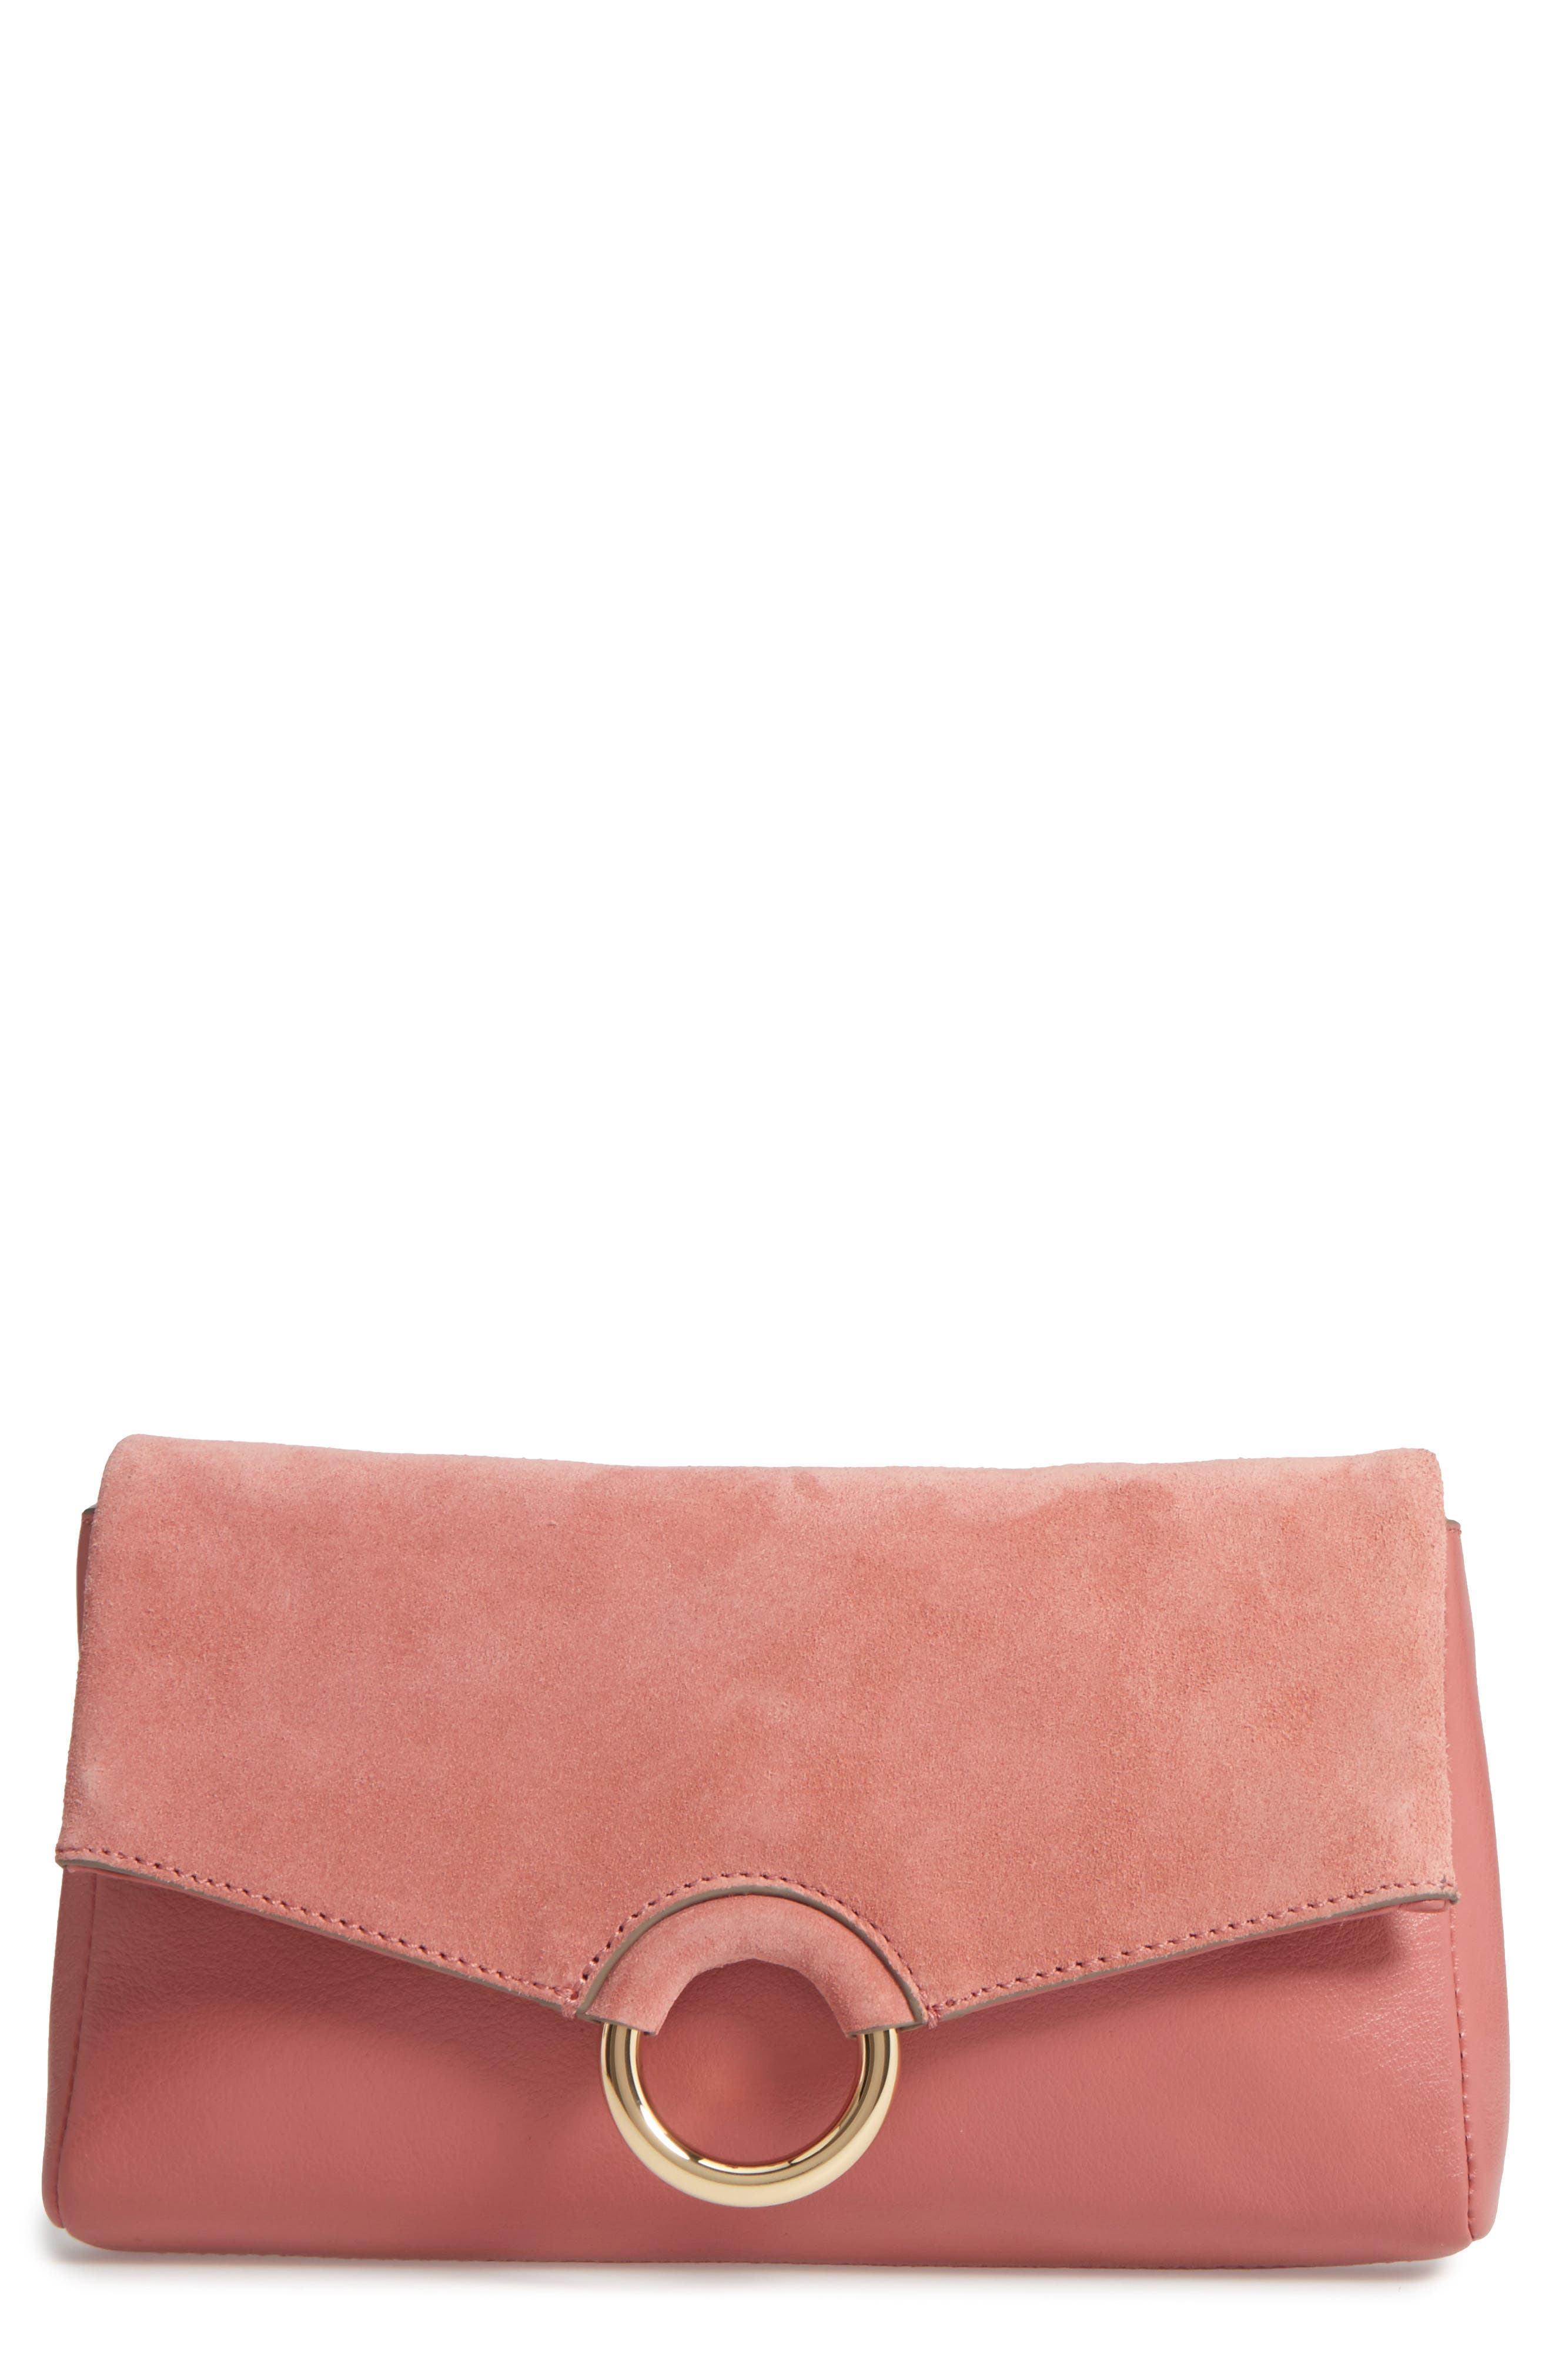 Vince Camuto Adiana Leather & Suede Clutch